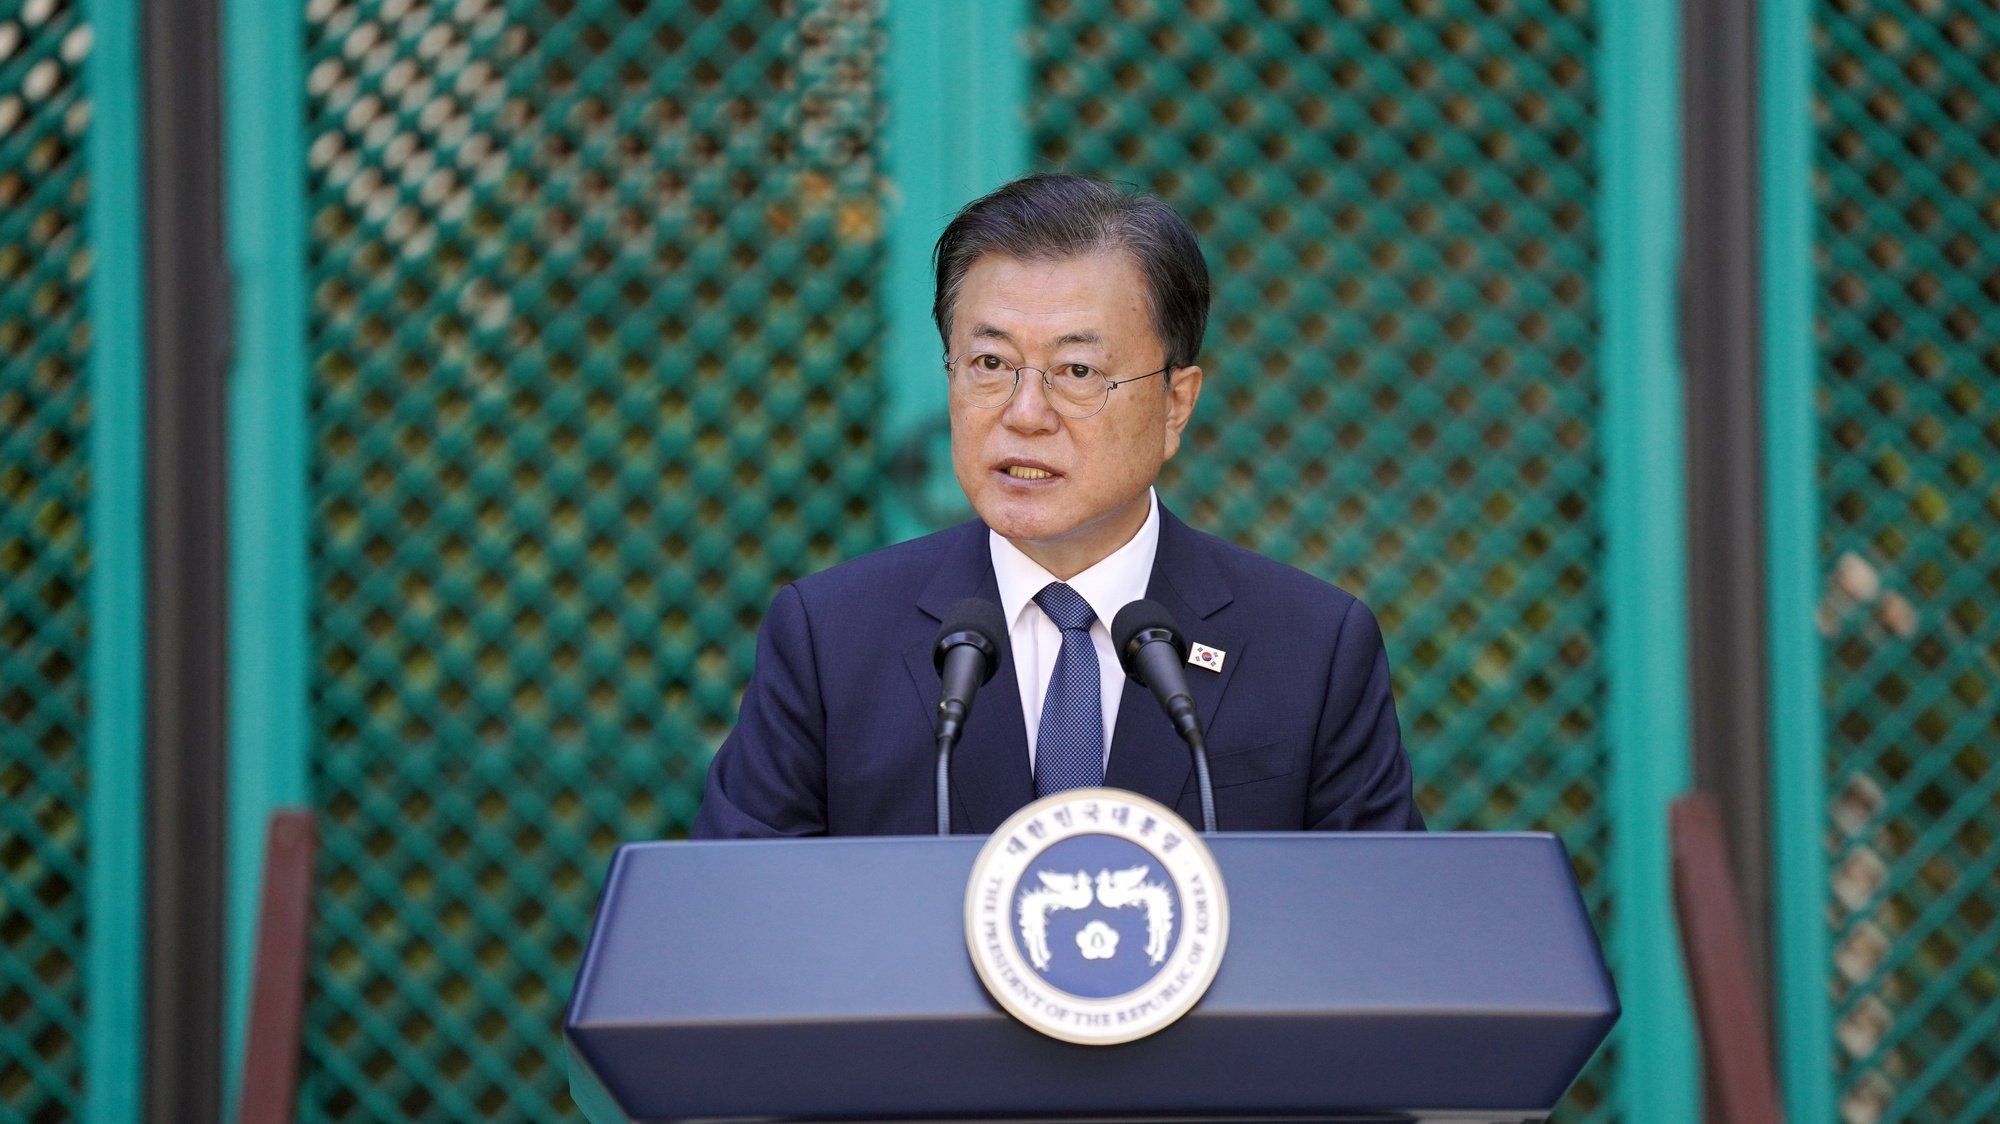 epa09482624 South Korean President Moon Jae-in speaks at the Korean Language Flagship Center at the University of Hawaii at Manoa in Honolulu, Hawaii, USA, 22 Setpember 2021, during a ceremony to award the descendants of two late independence activists, Kim No-di and Ahn Jung-song, posthumous medals of honor.  EPA/YONHAP SOUTH KOREA OUT